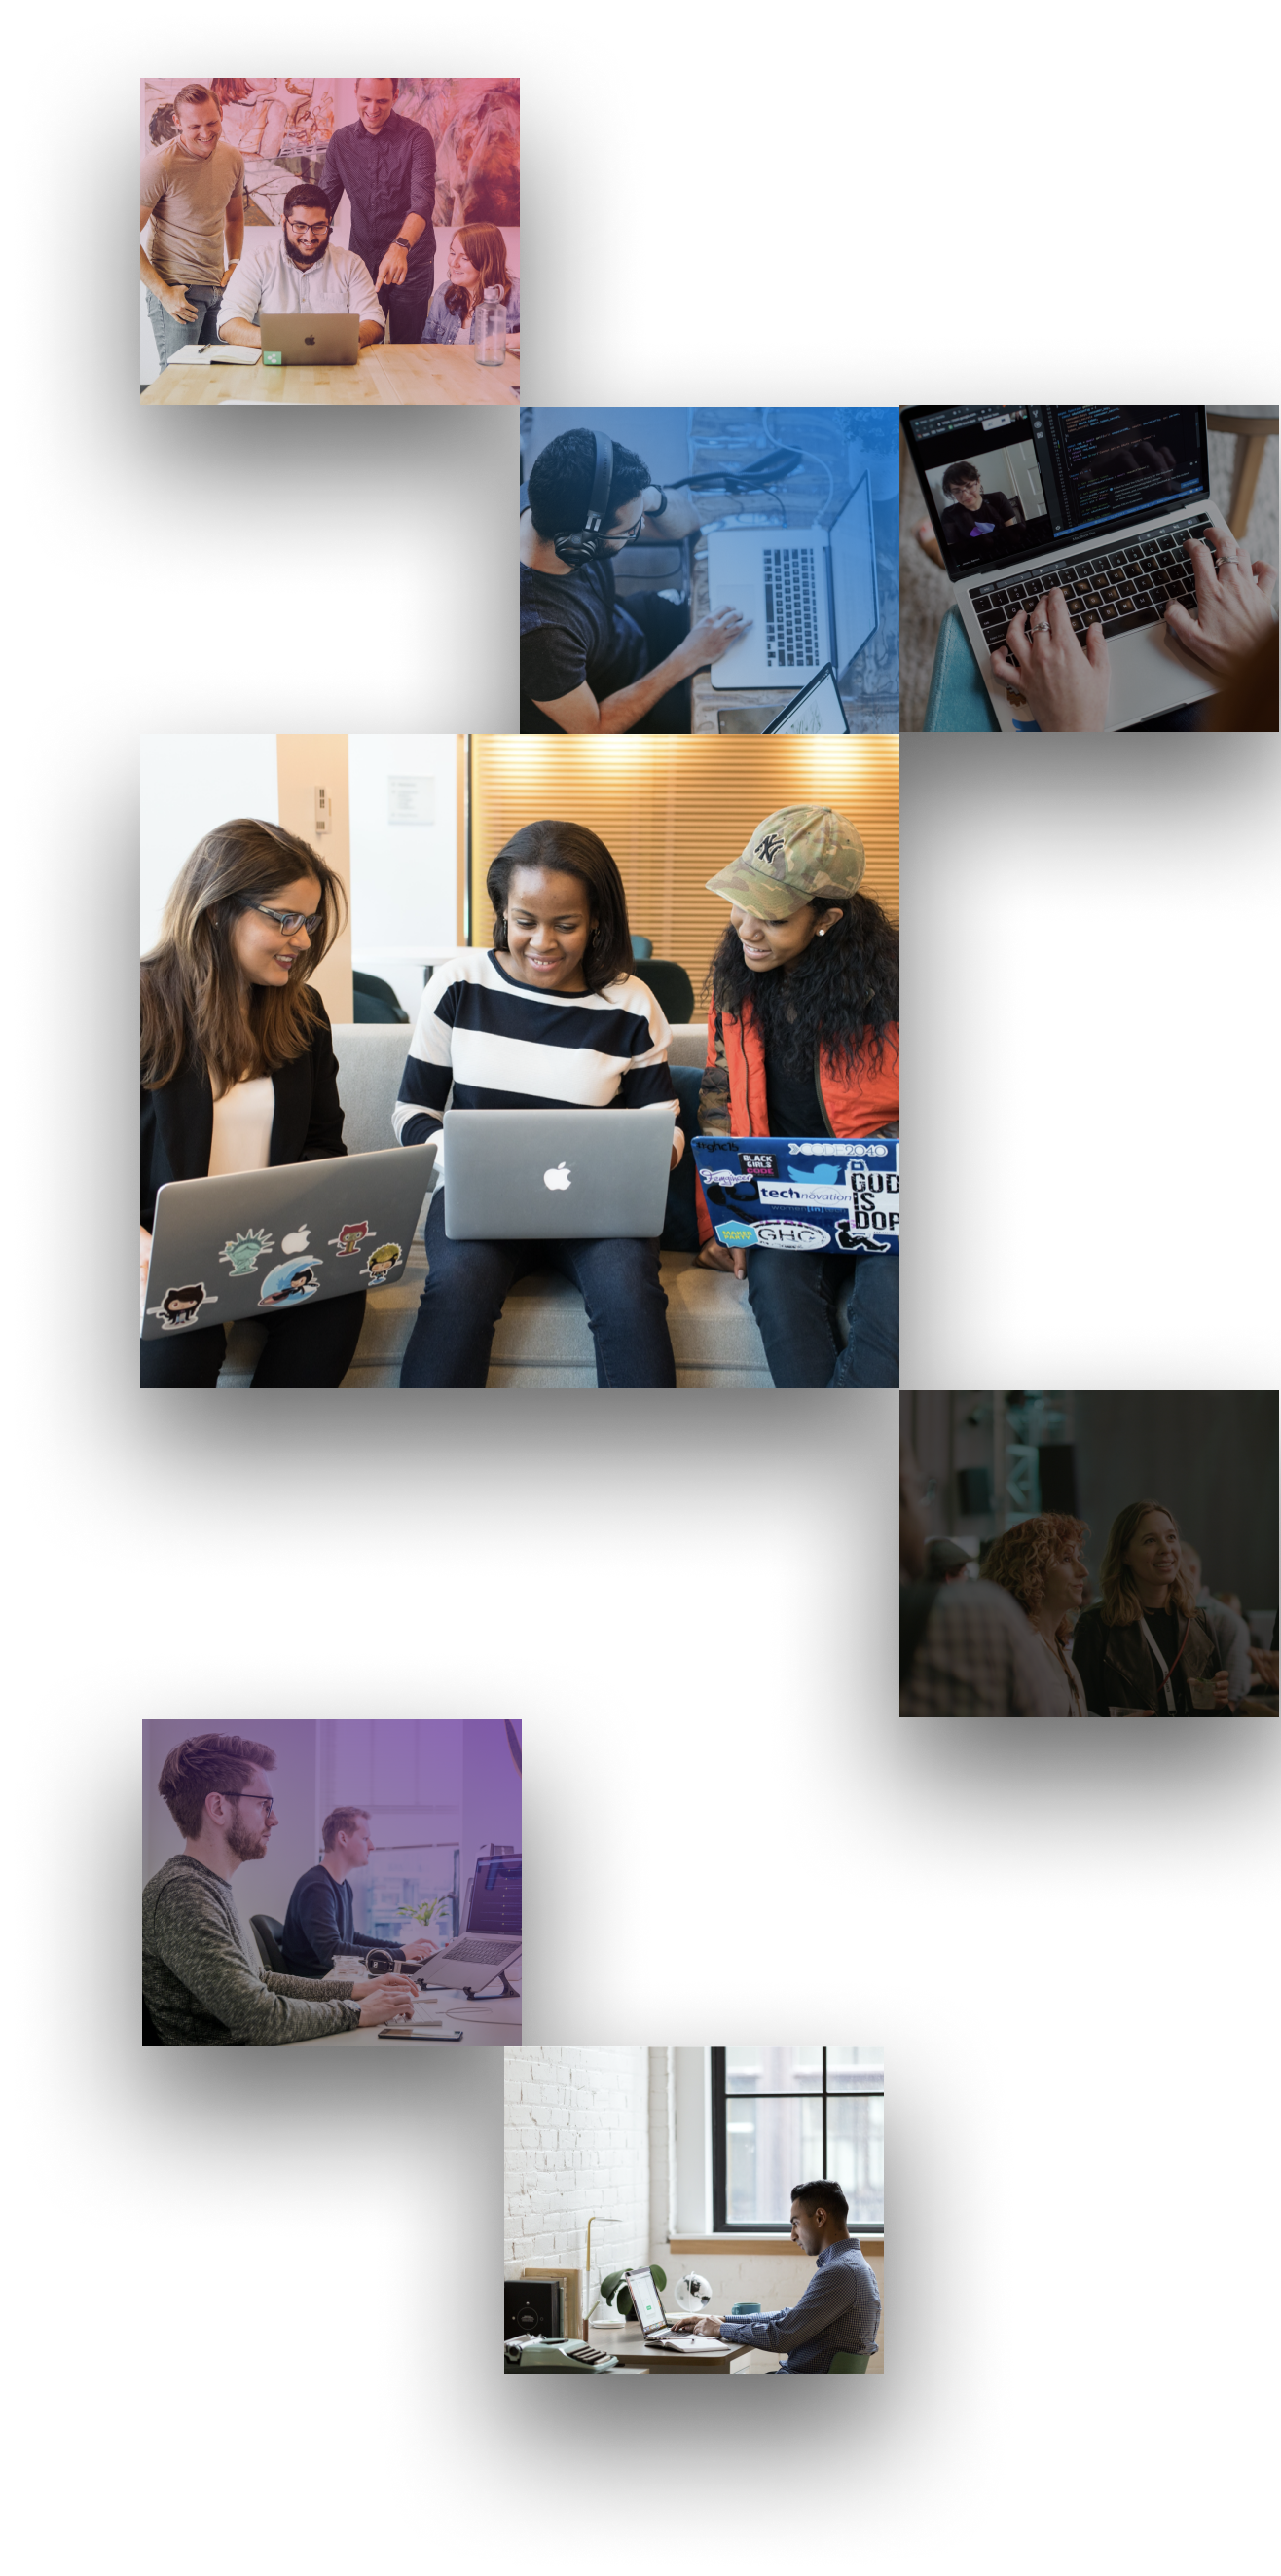 A Mosaic of photos of HashiCorp employees